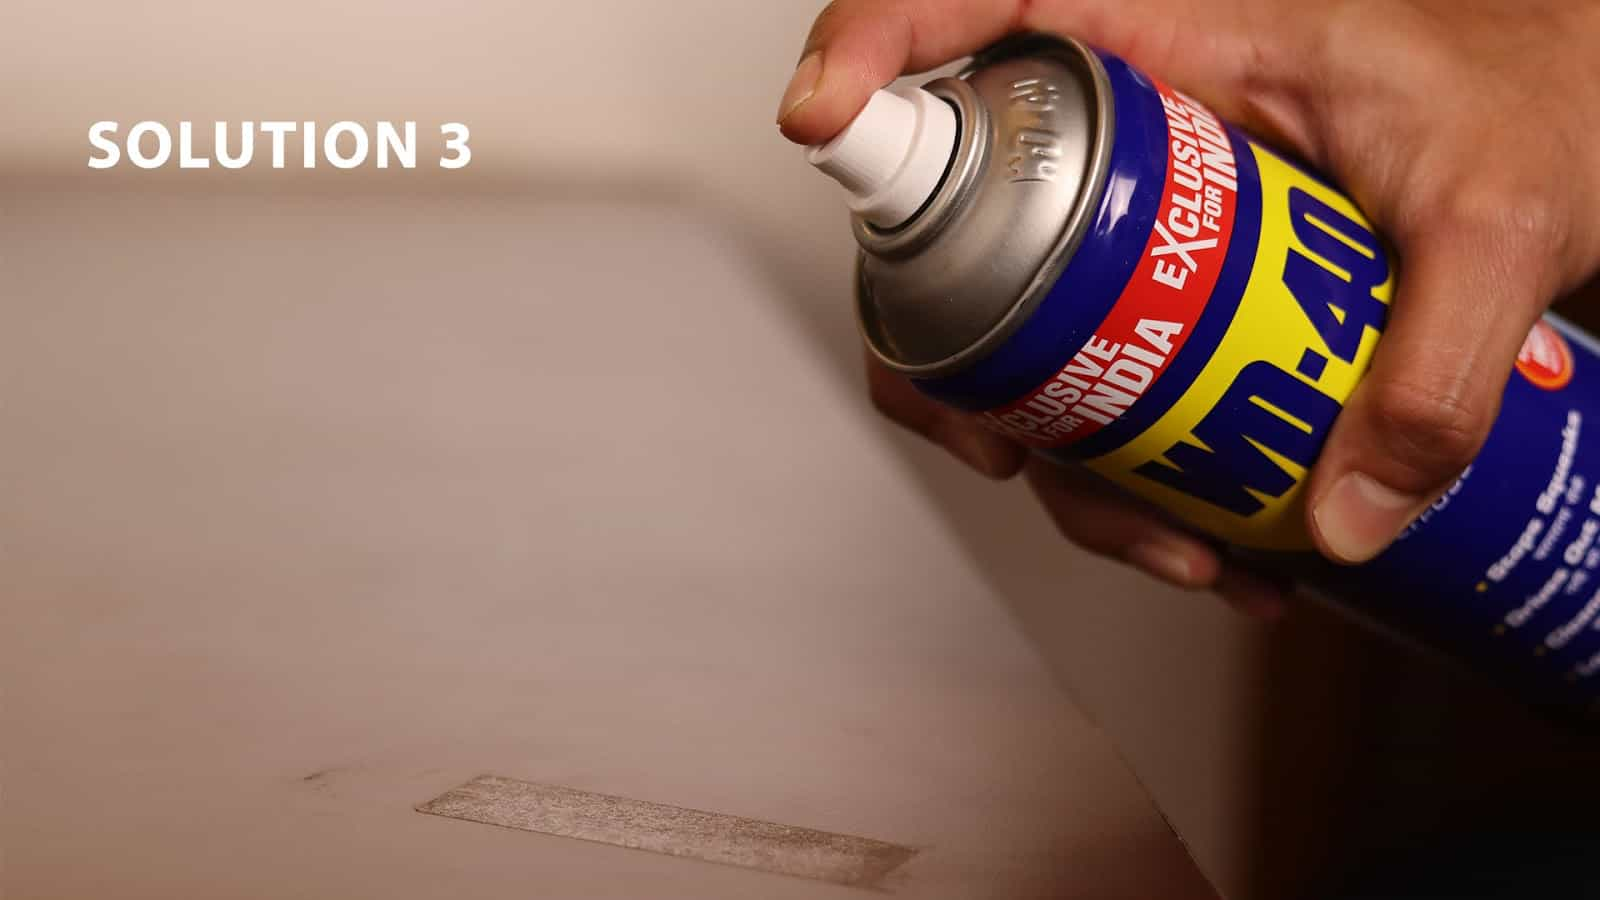 remove cello tape stains with WD-40